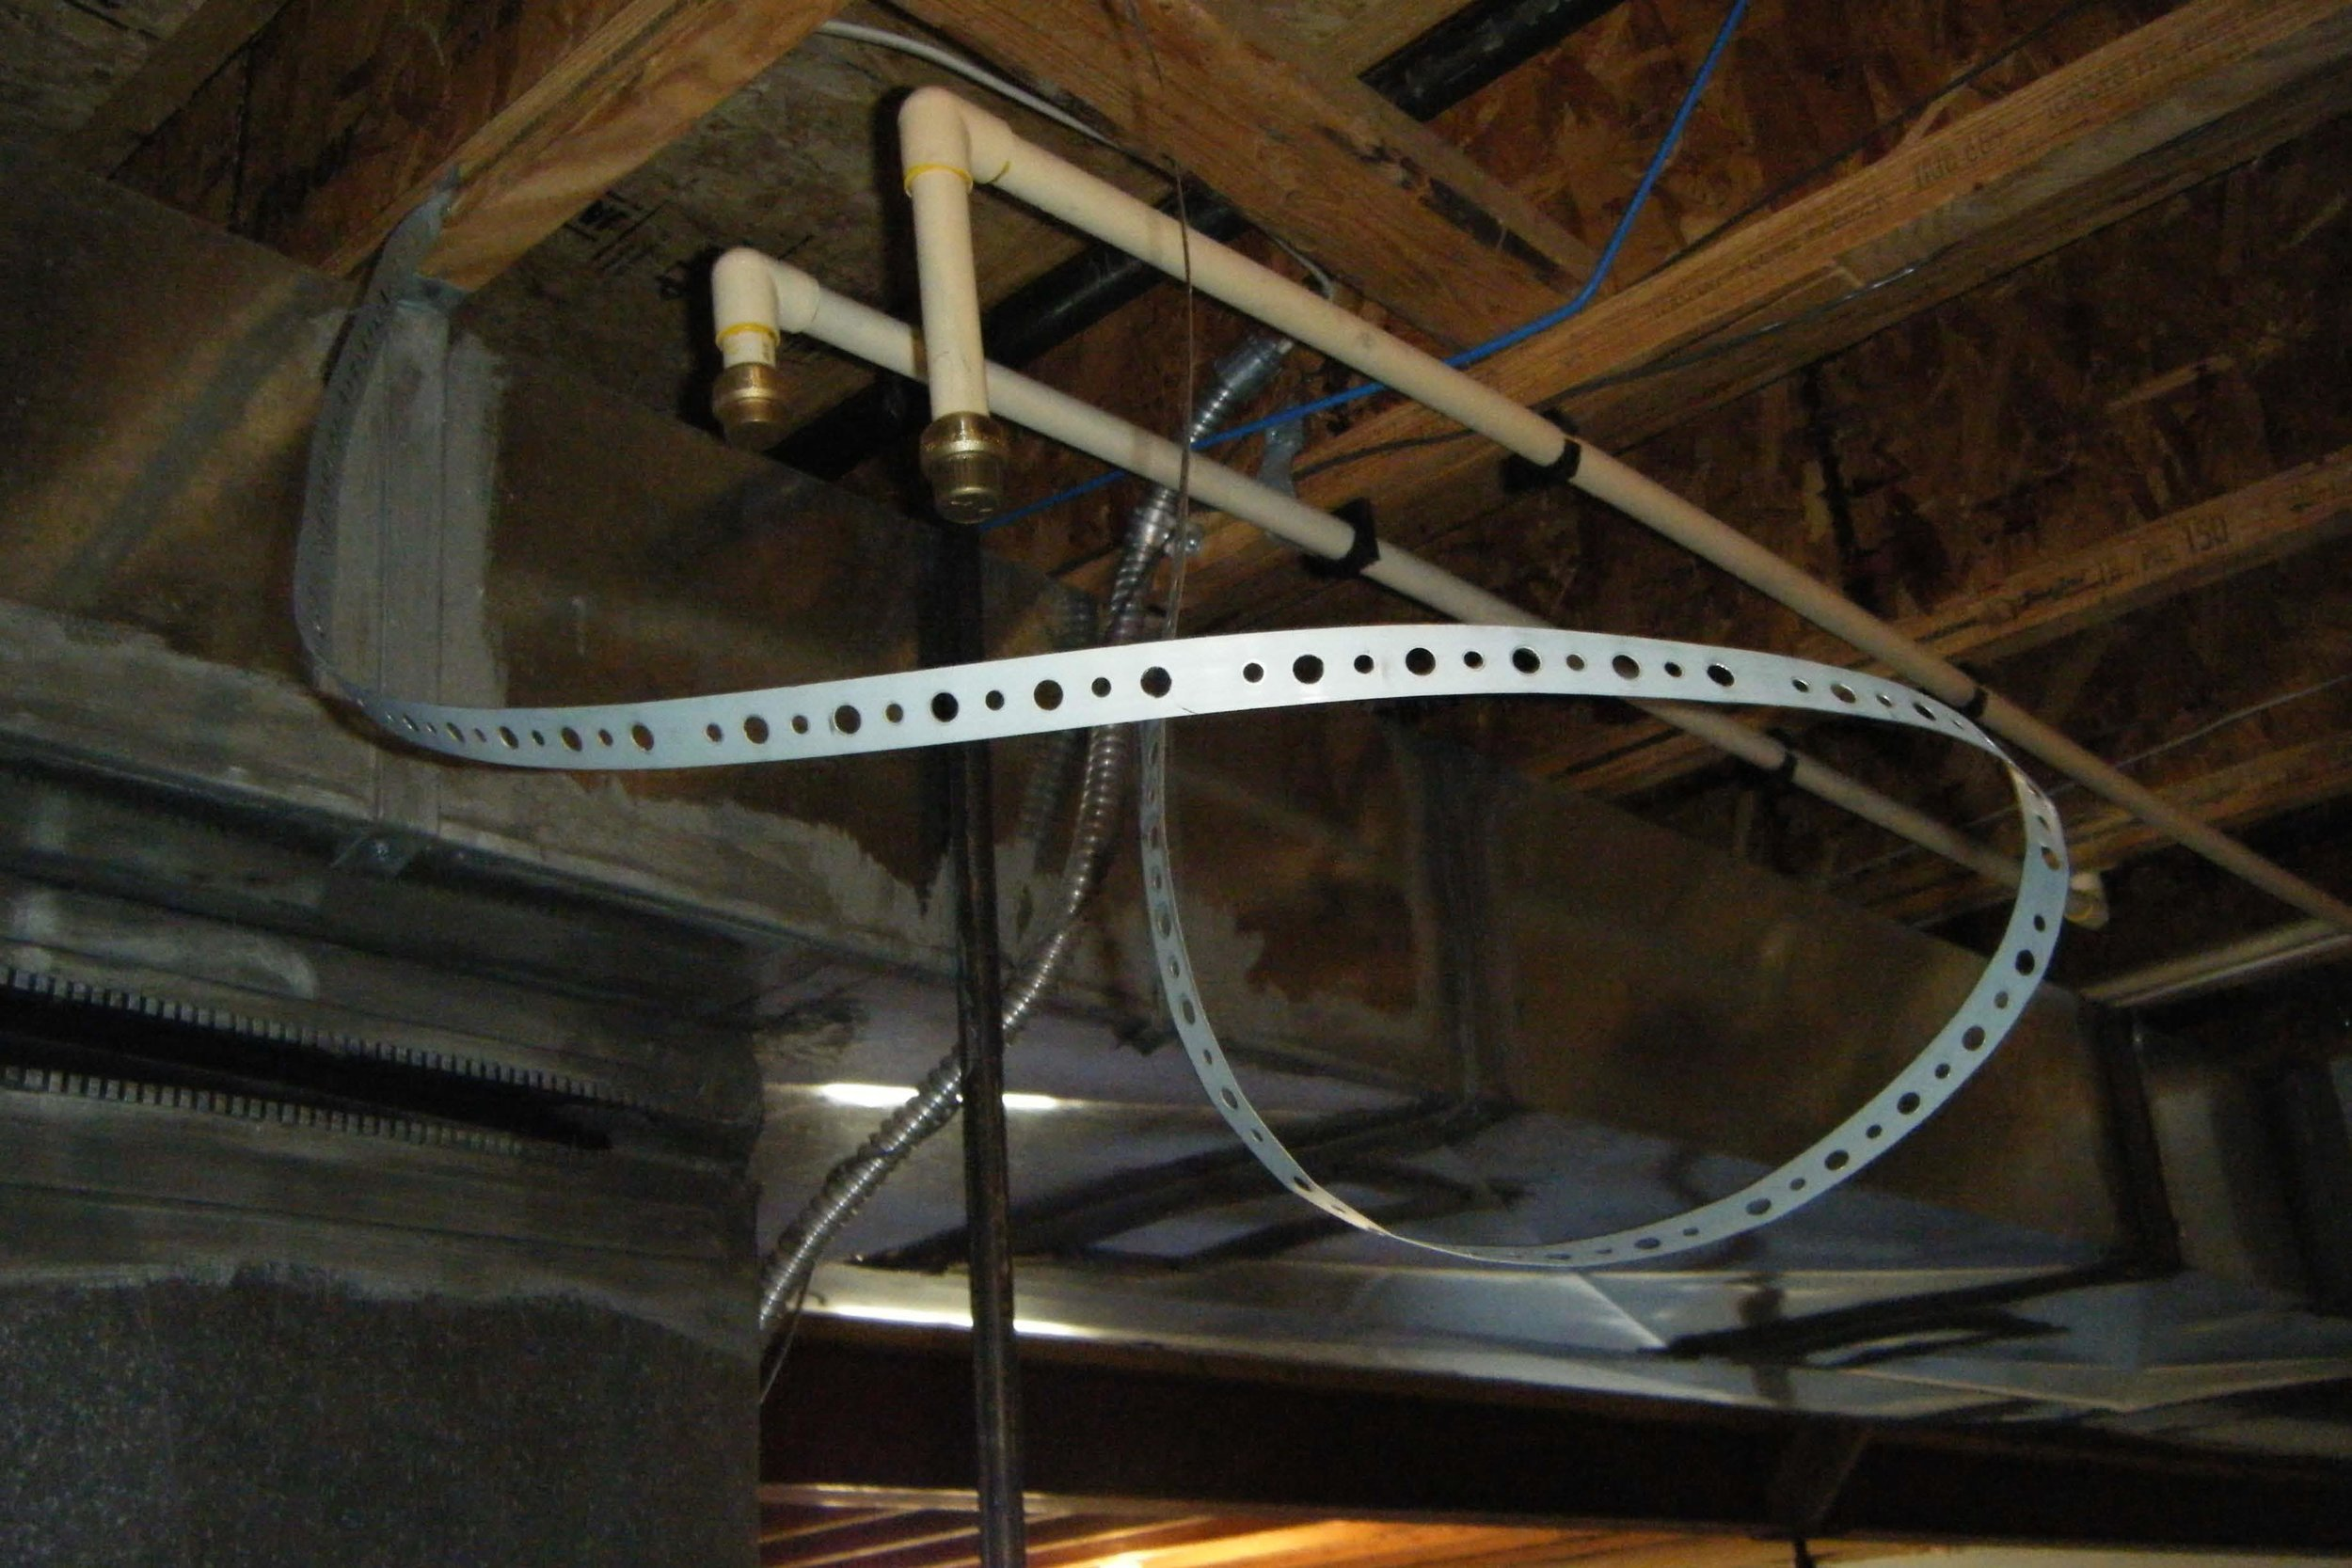 For peace of mind, I'm a huge fan of steel reinforced hoses! The plumbing systems within your home are constantly under pressure, and many of them are connected using hoses, (e.g., faucets, toilets, laundry tubs, washing machines, sinks, etc.). If one of these hoses springs a leak while you're on vacation, you may be coming home to a big mess.